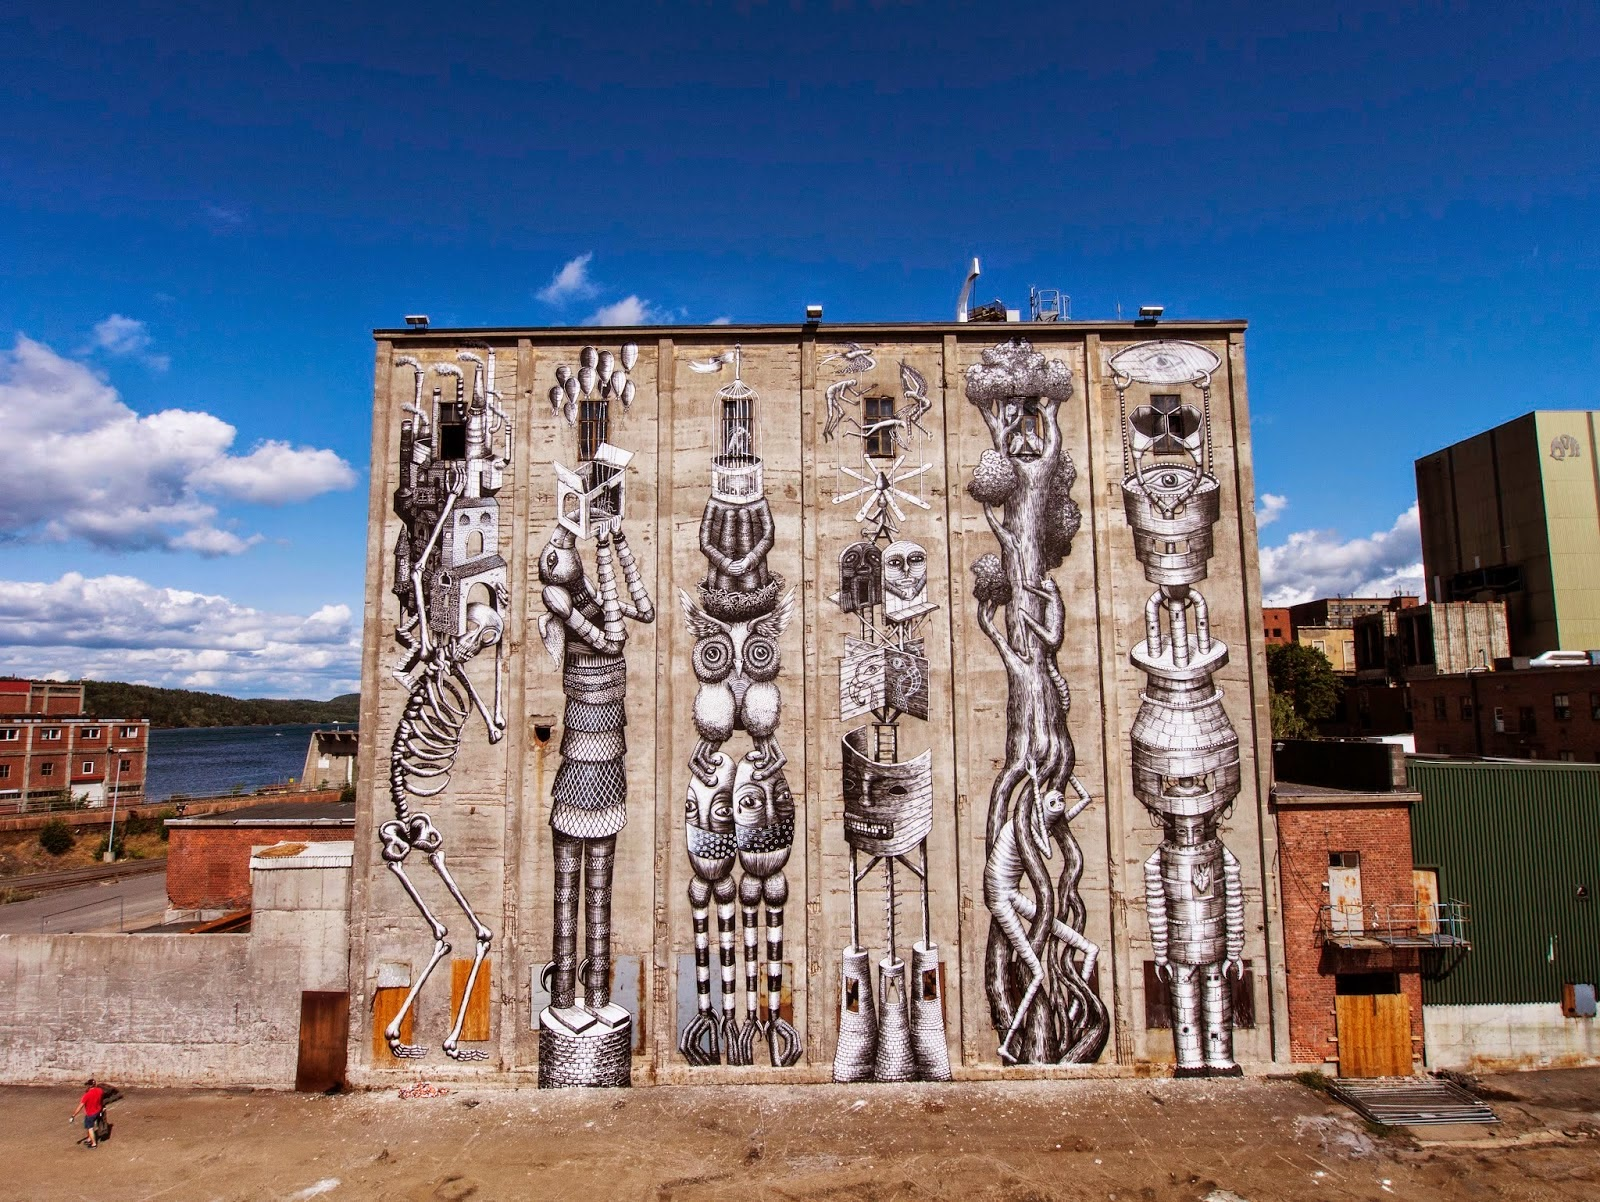 The Out Of This World Street Art Of Phlegm